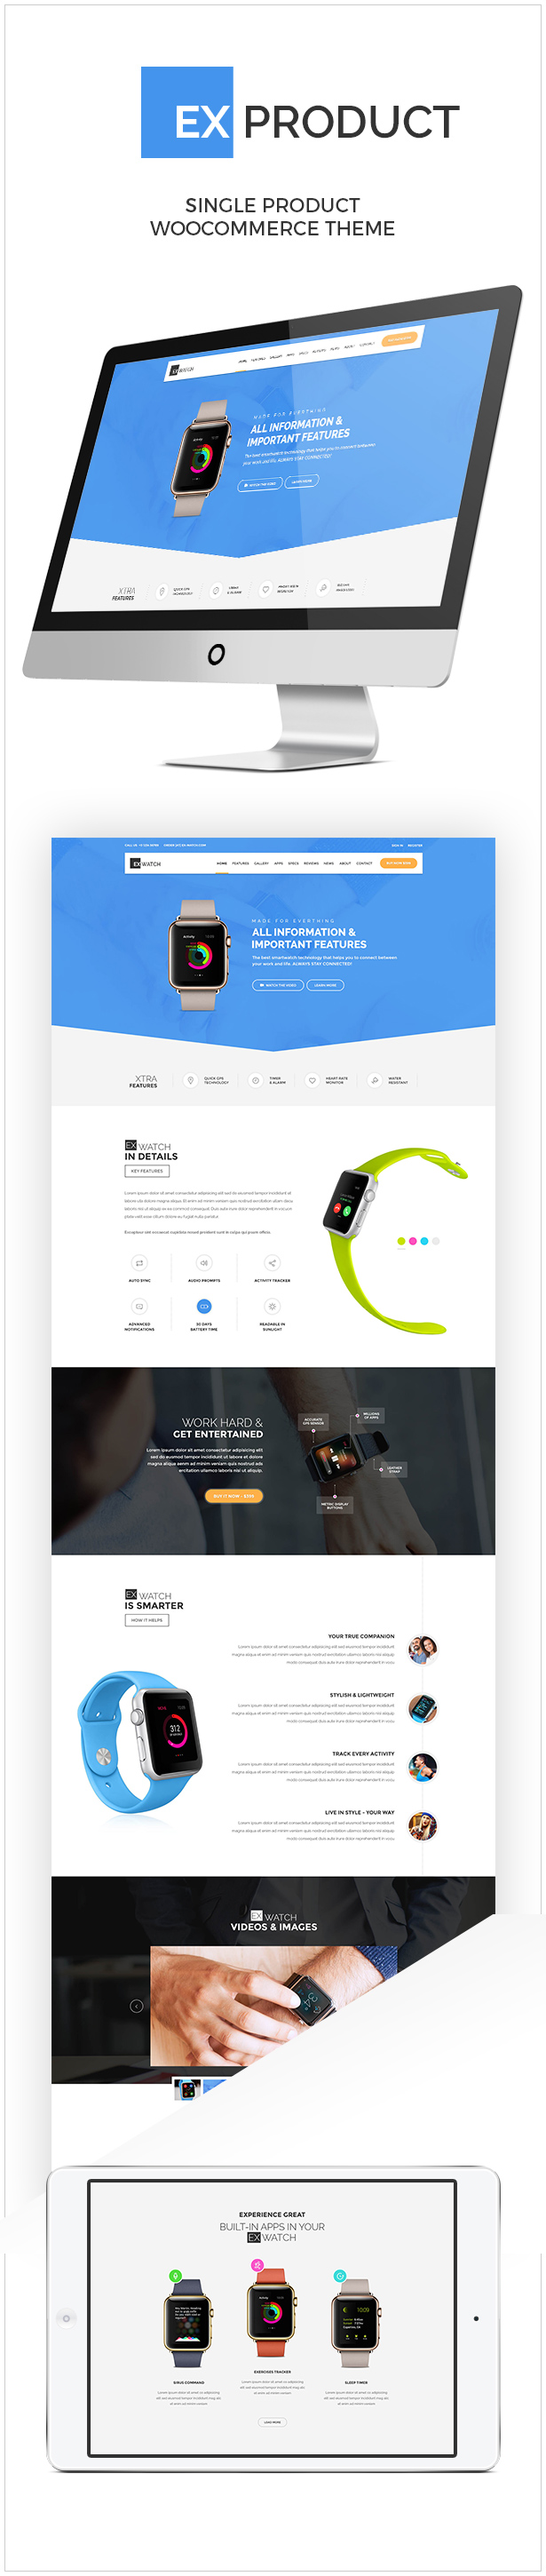 ExProduct - Single Product theme - 1